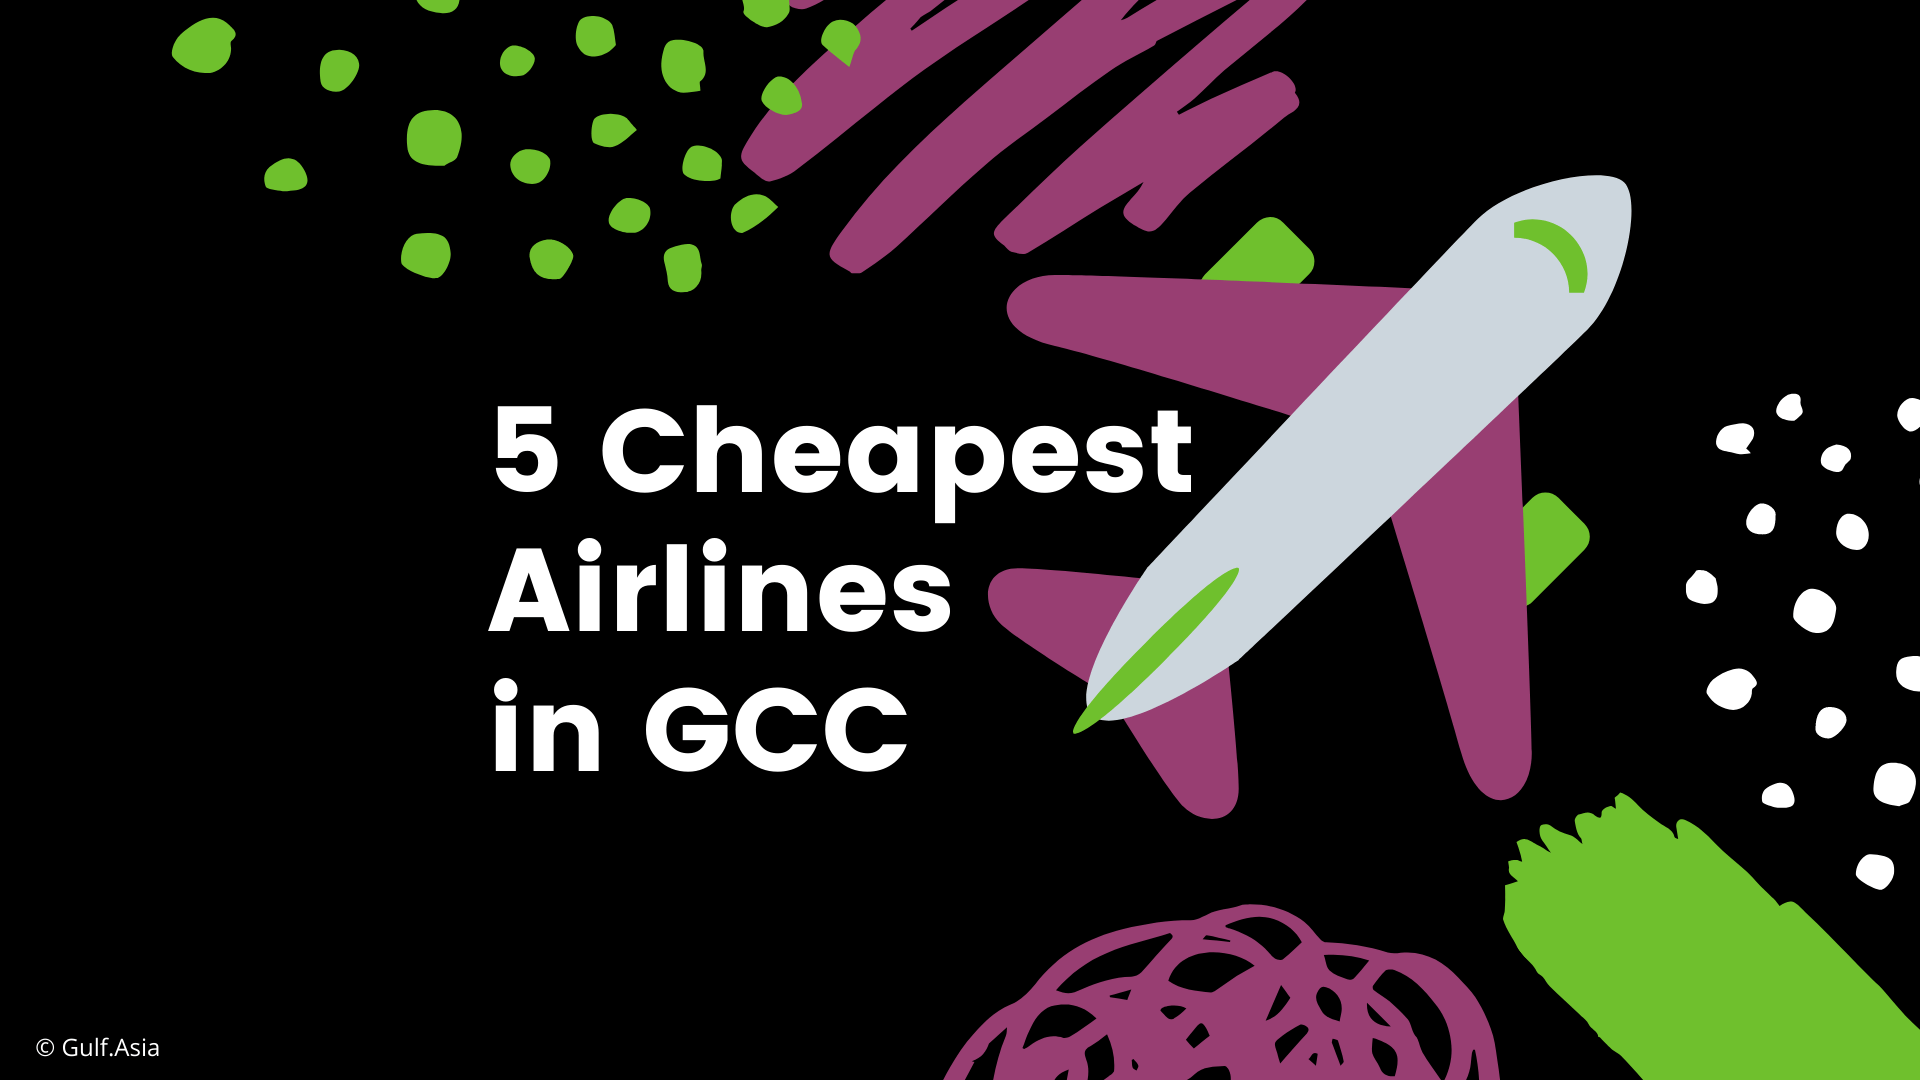 5 Cheapest Airlines in Gulf Cooperation Council (GCC)